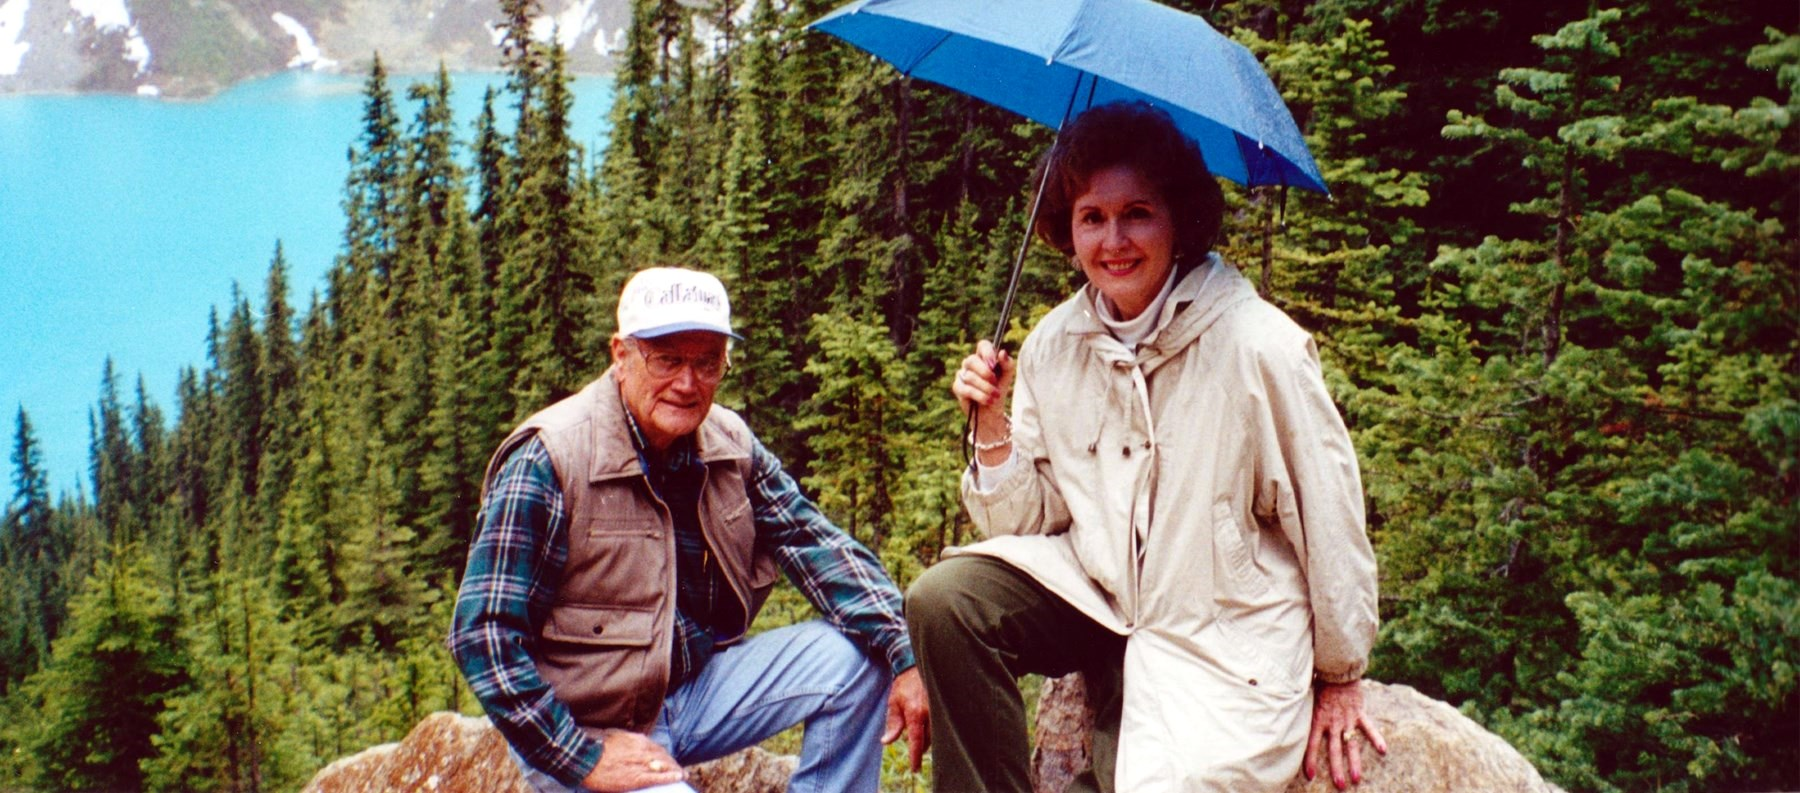 carter and betty taylor.jpg